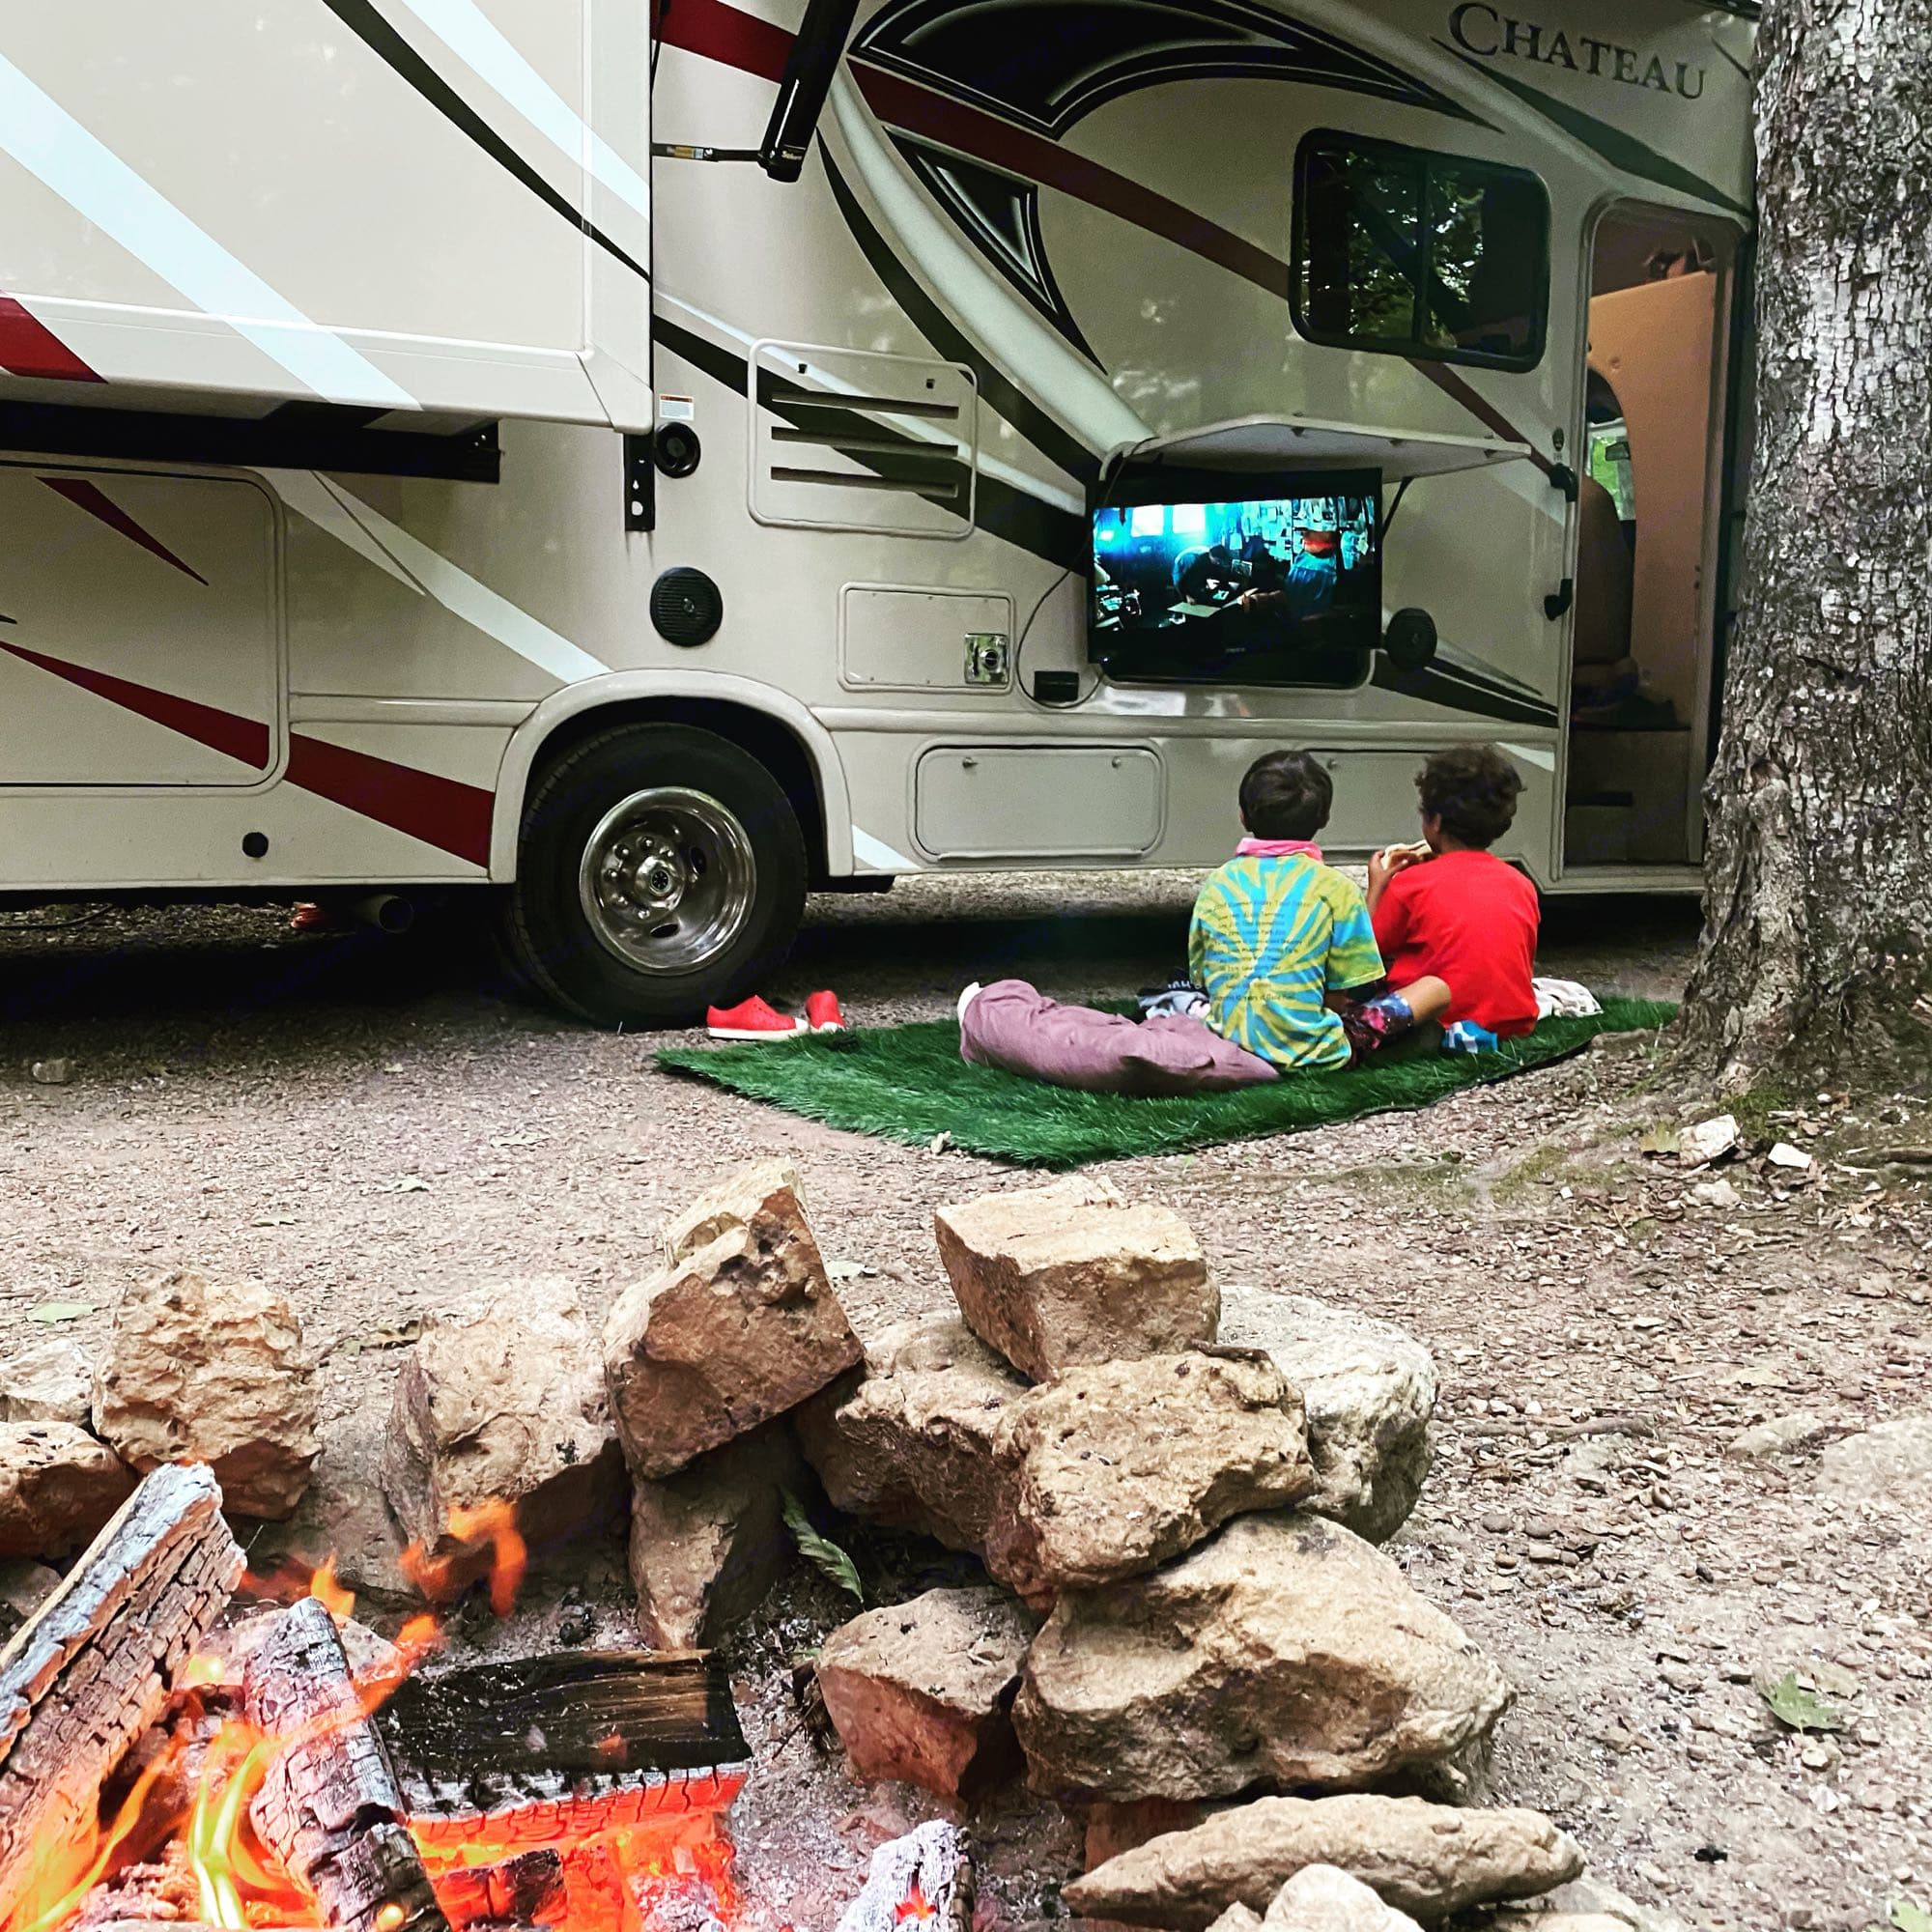 Relax next to the fire while you watch a family film, catch the highlights of the game all while enjoying the outdoors. . Thor Motor Coach Chateau 2017